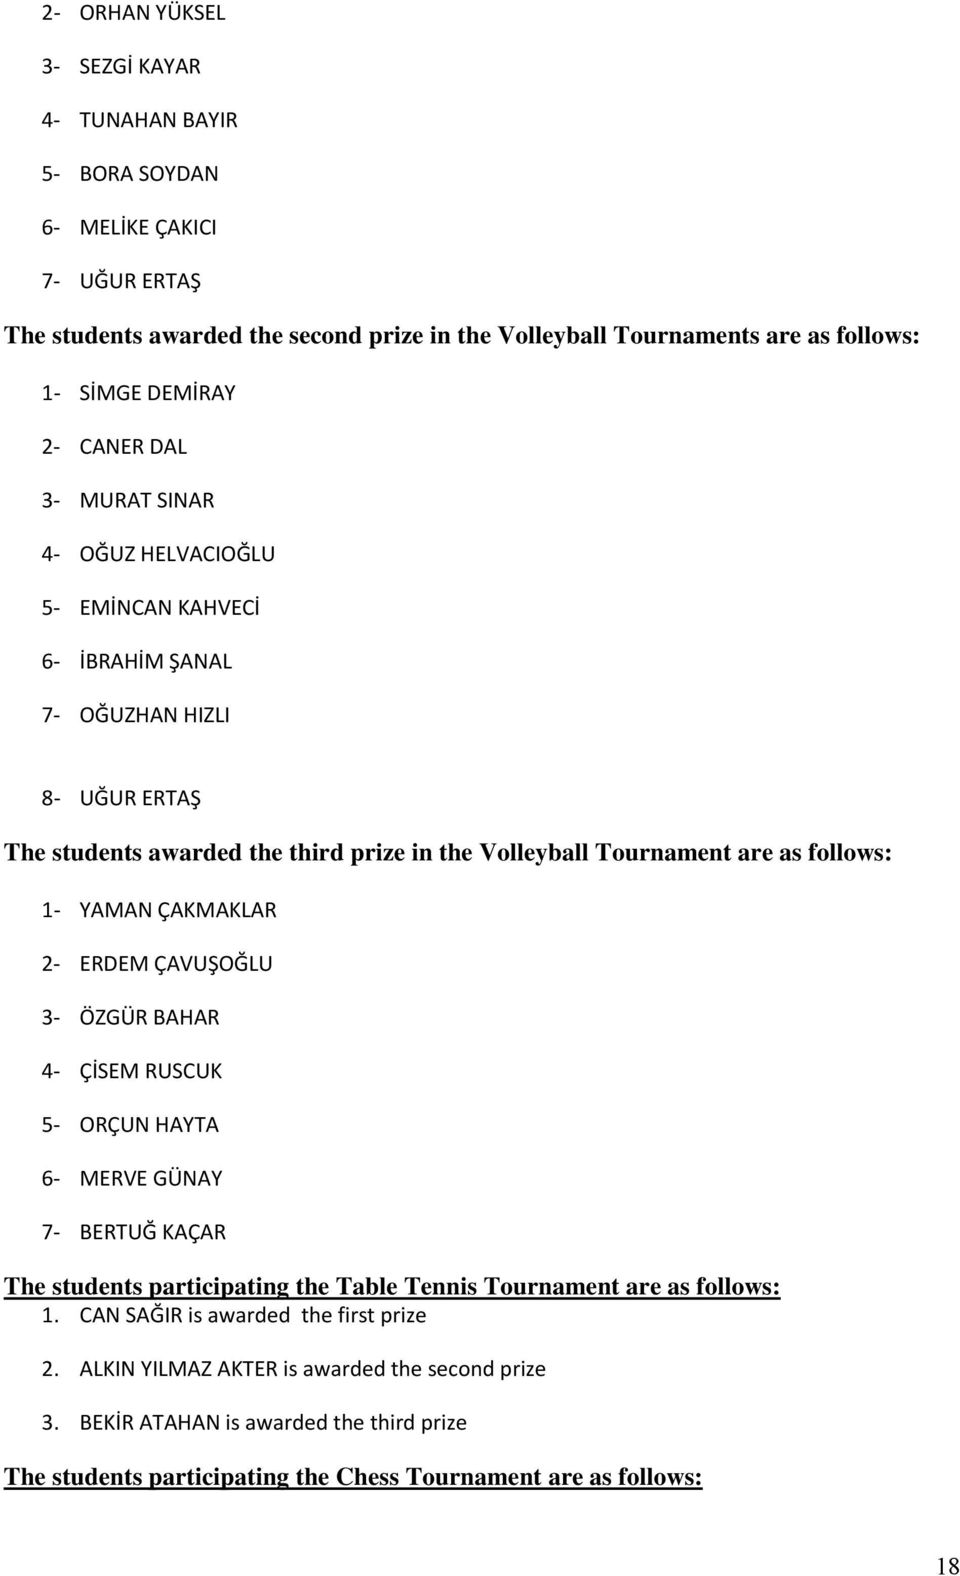 follows: 1 YAMAN ÇAKMAKLAR 2 ERDEM ÇAVUŞOĞLU 3 ÖZGÜR BAHAR 4 ÇİSEM RUSCUK 5 ORÇUN HAYTA 6 MERVE GÜNAY 7 BERTUĞ KAÇAR The students participating the Table Tennis Tournament are as follows: